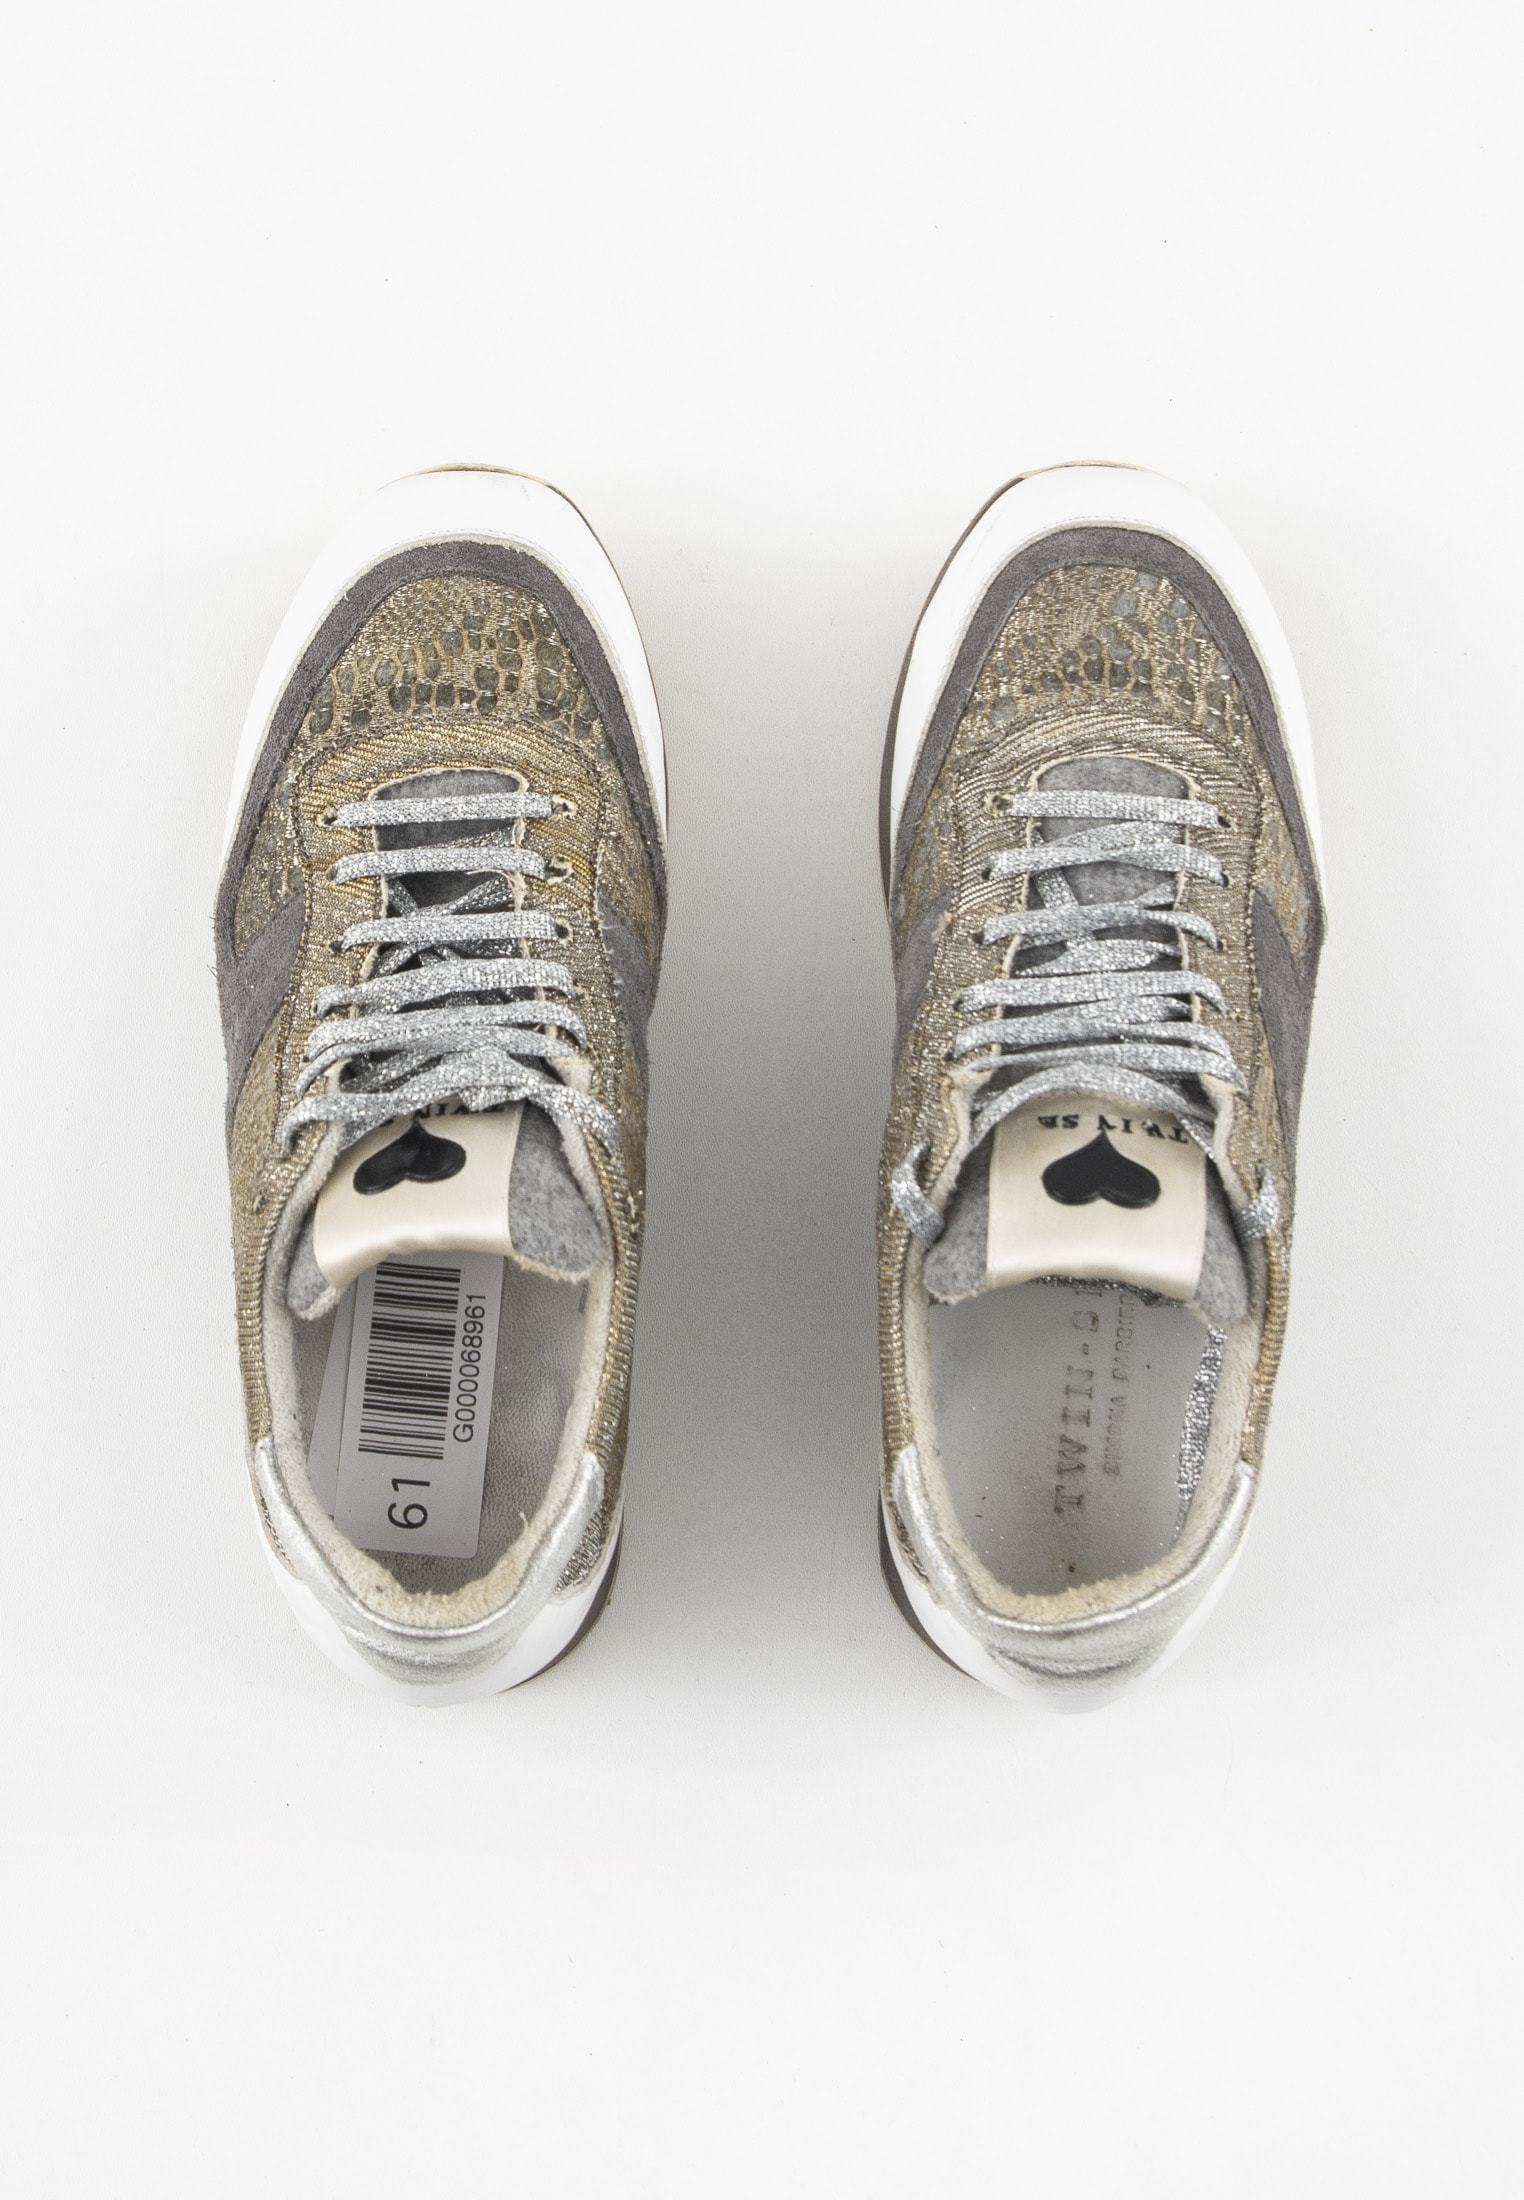 TWINSET sneakers, gold, 37